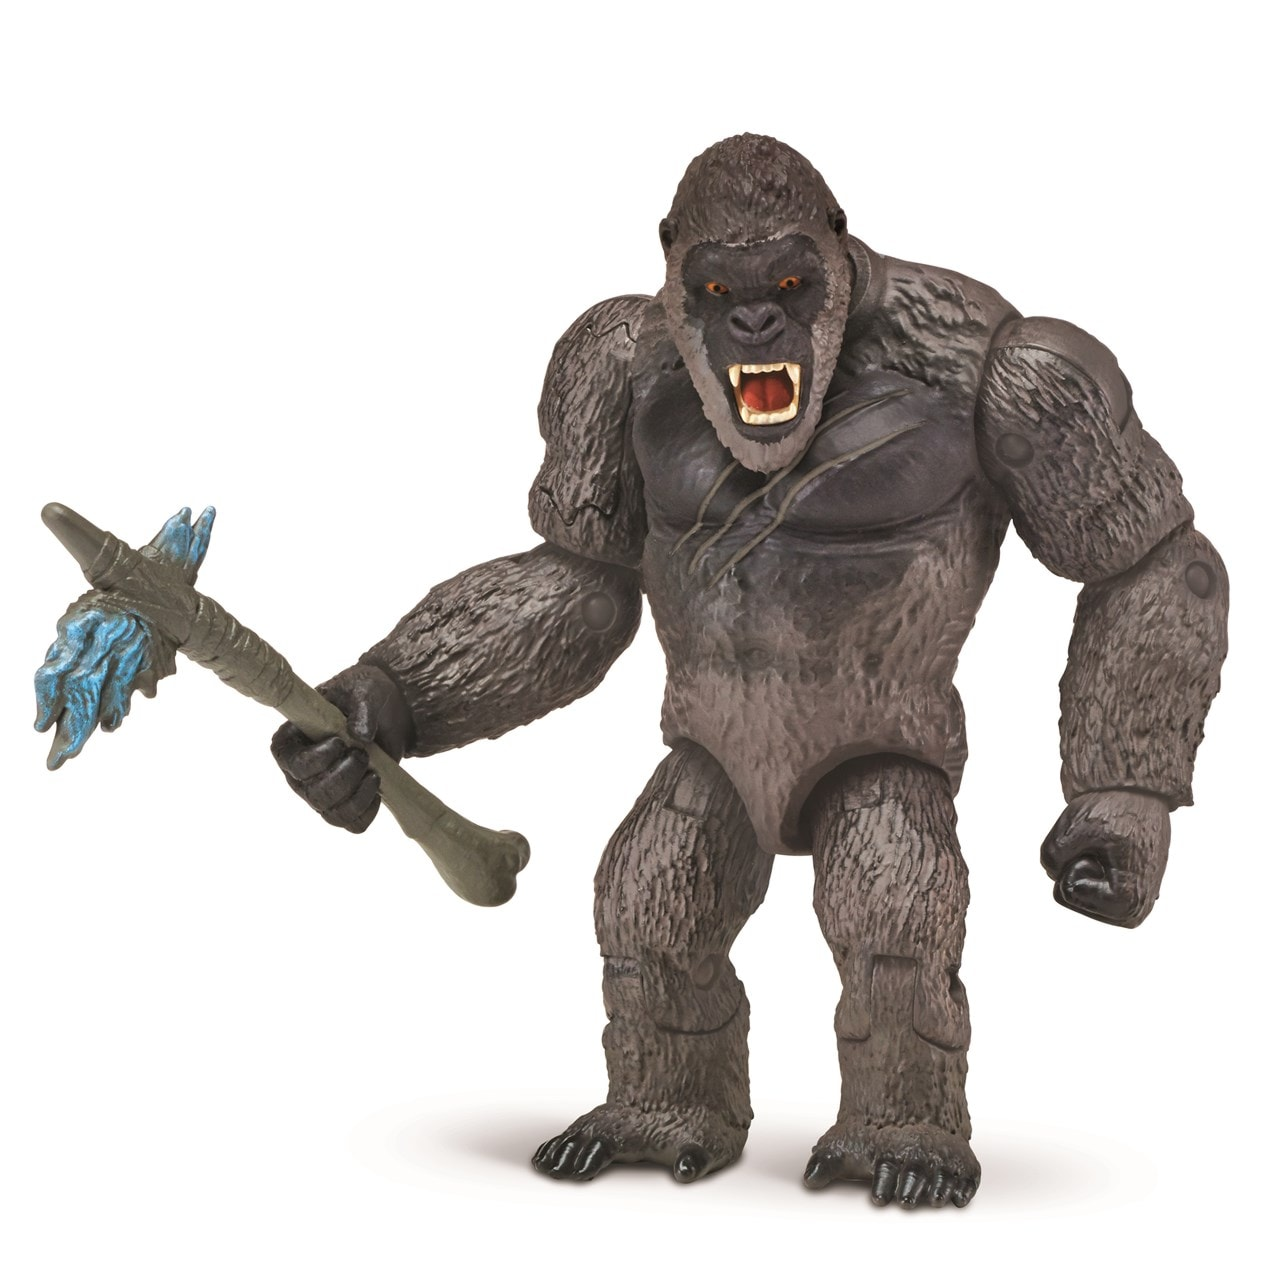 Monsterverse Godzilla vs Kong: King Kong with Axe Action Figure - 1